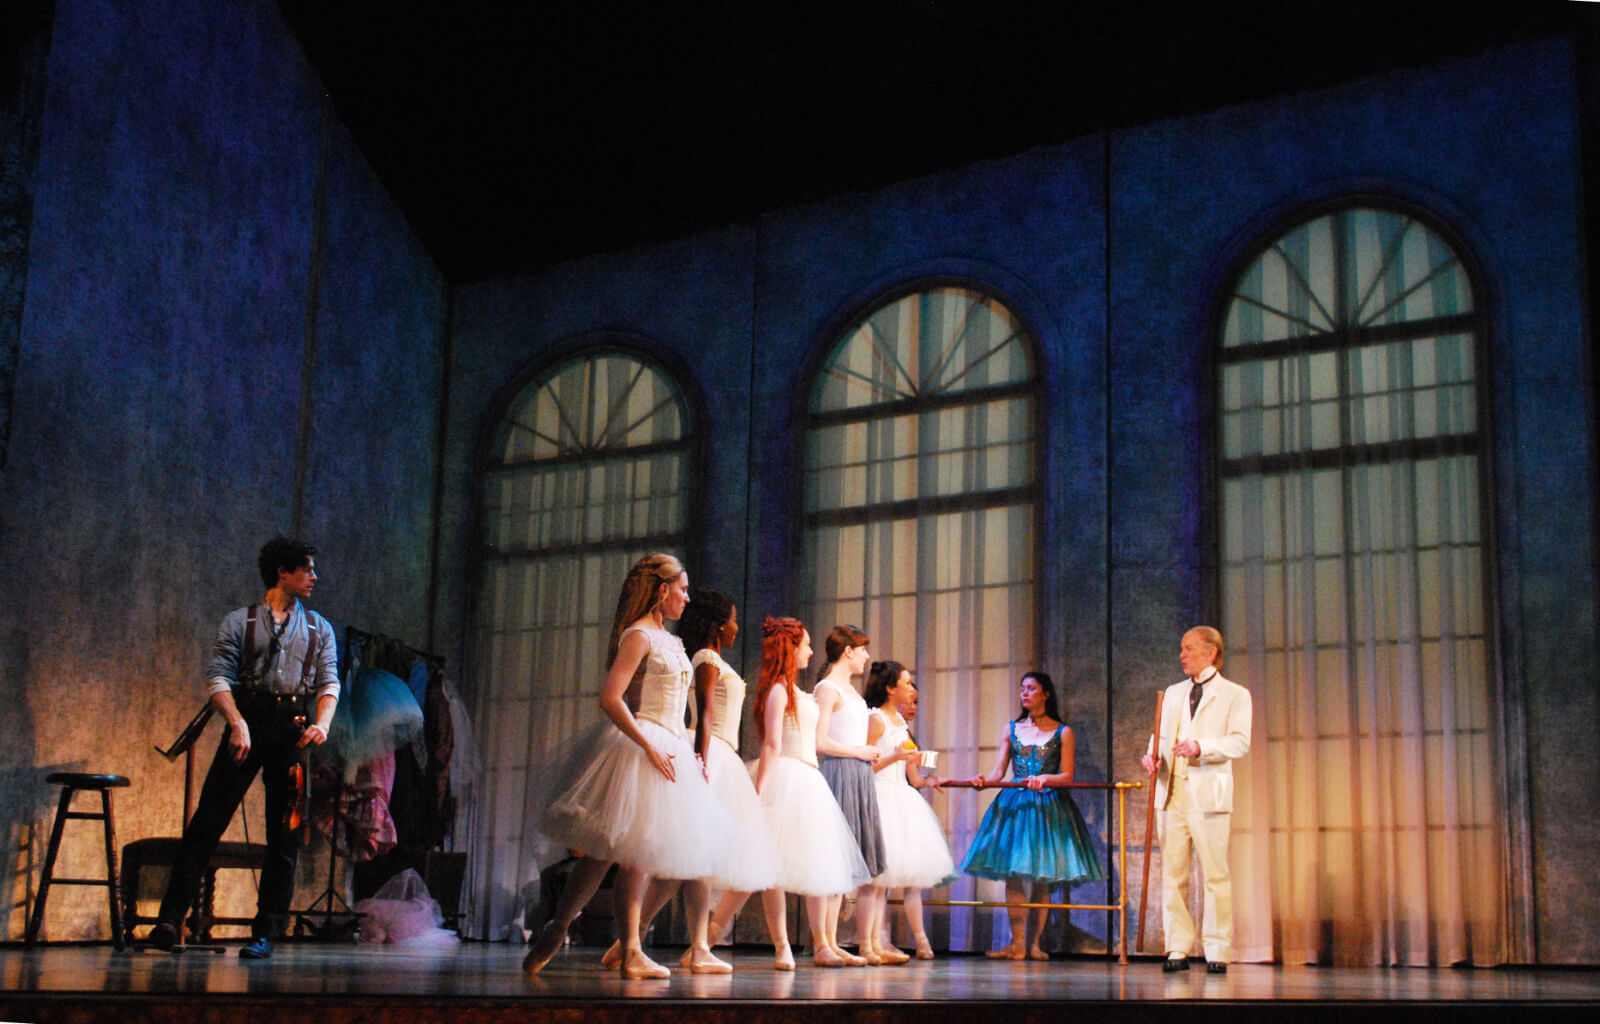 The ballet class from the musical Little Dancer. Ballet dancers dressed in white are listening to their ballet master. A young violinist looks on.